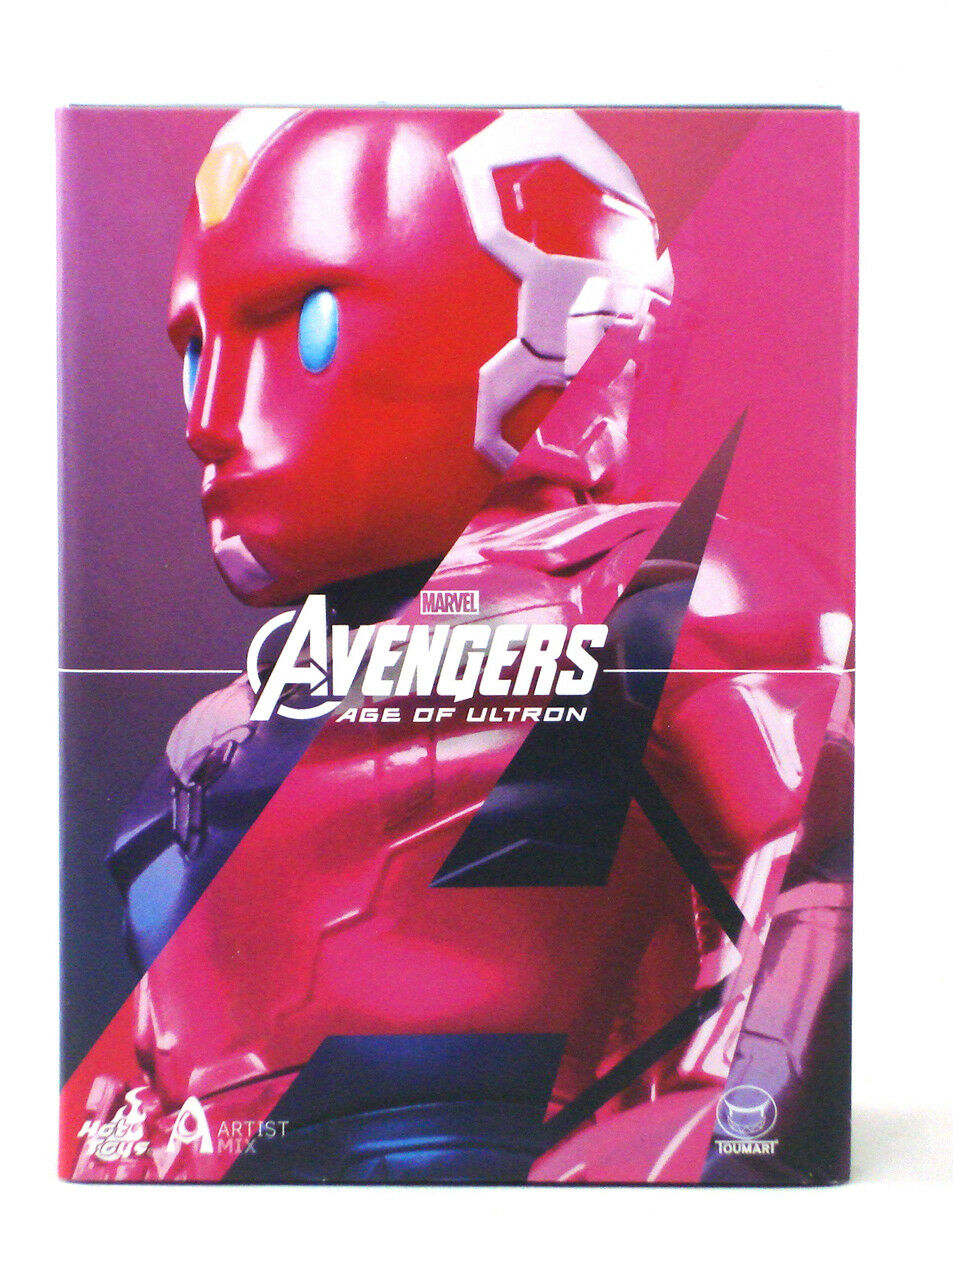 Hot Toys Artist Mix Vision Collectible Figure Touma Avengers Age Of Ultron